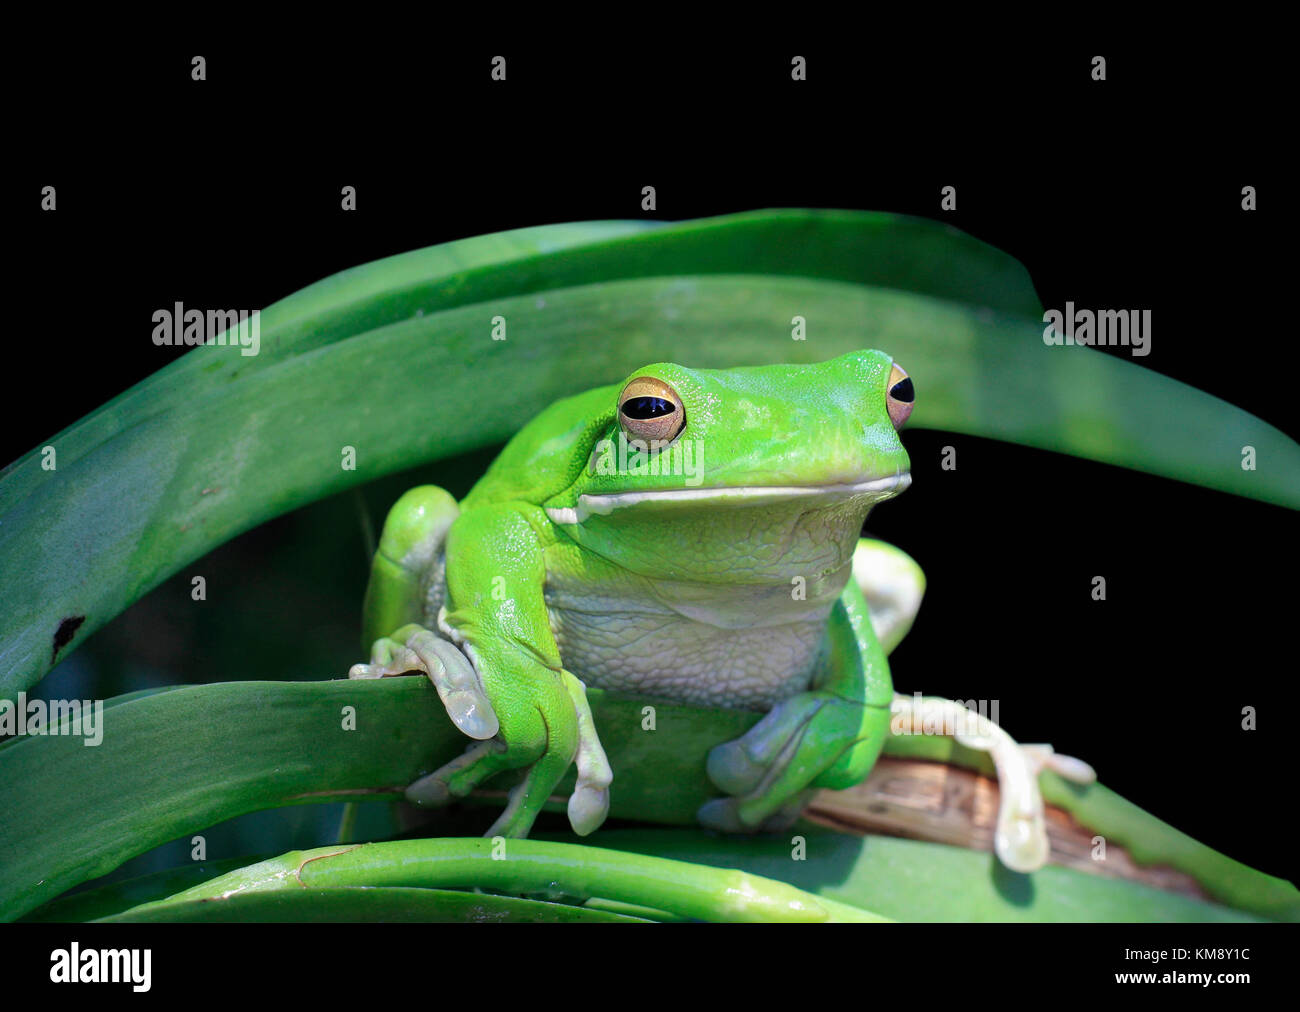 close up of a Tropical green frog - Stock Image